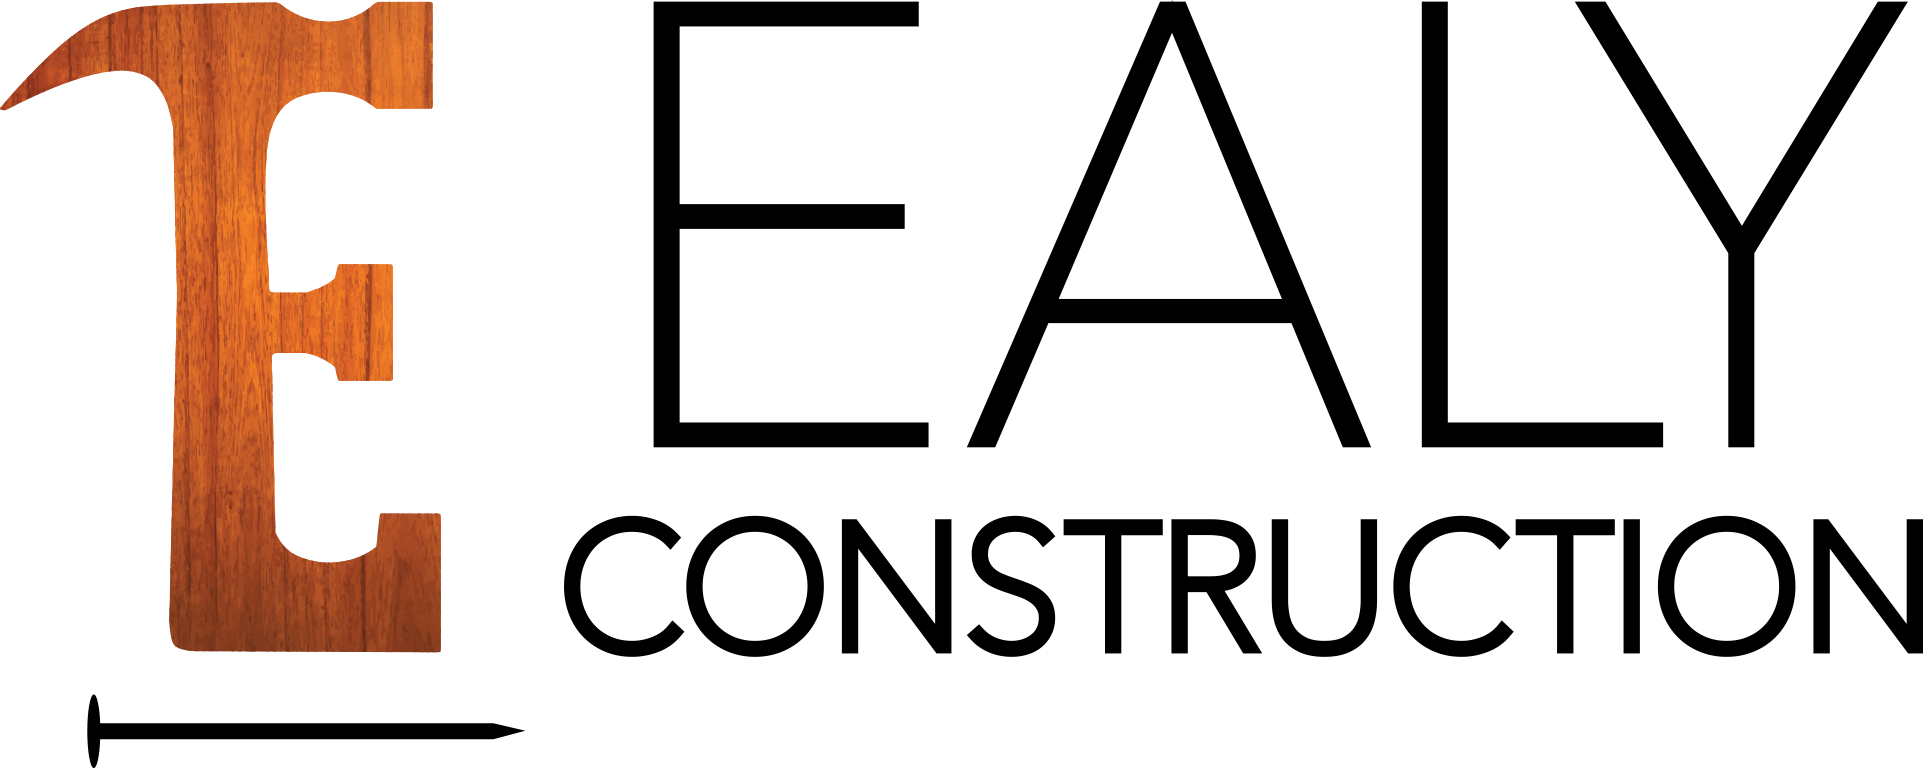 ealy-construction-logo-black.png